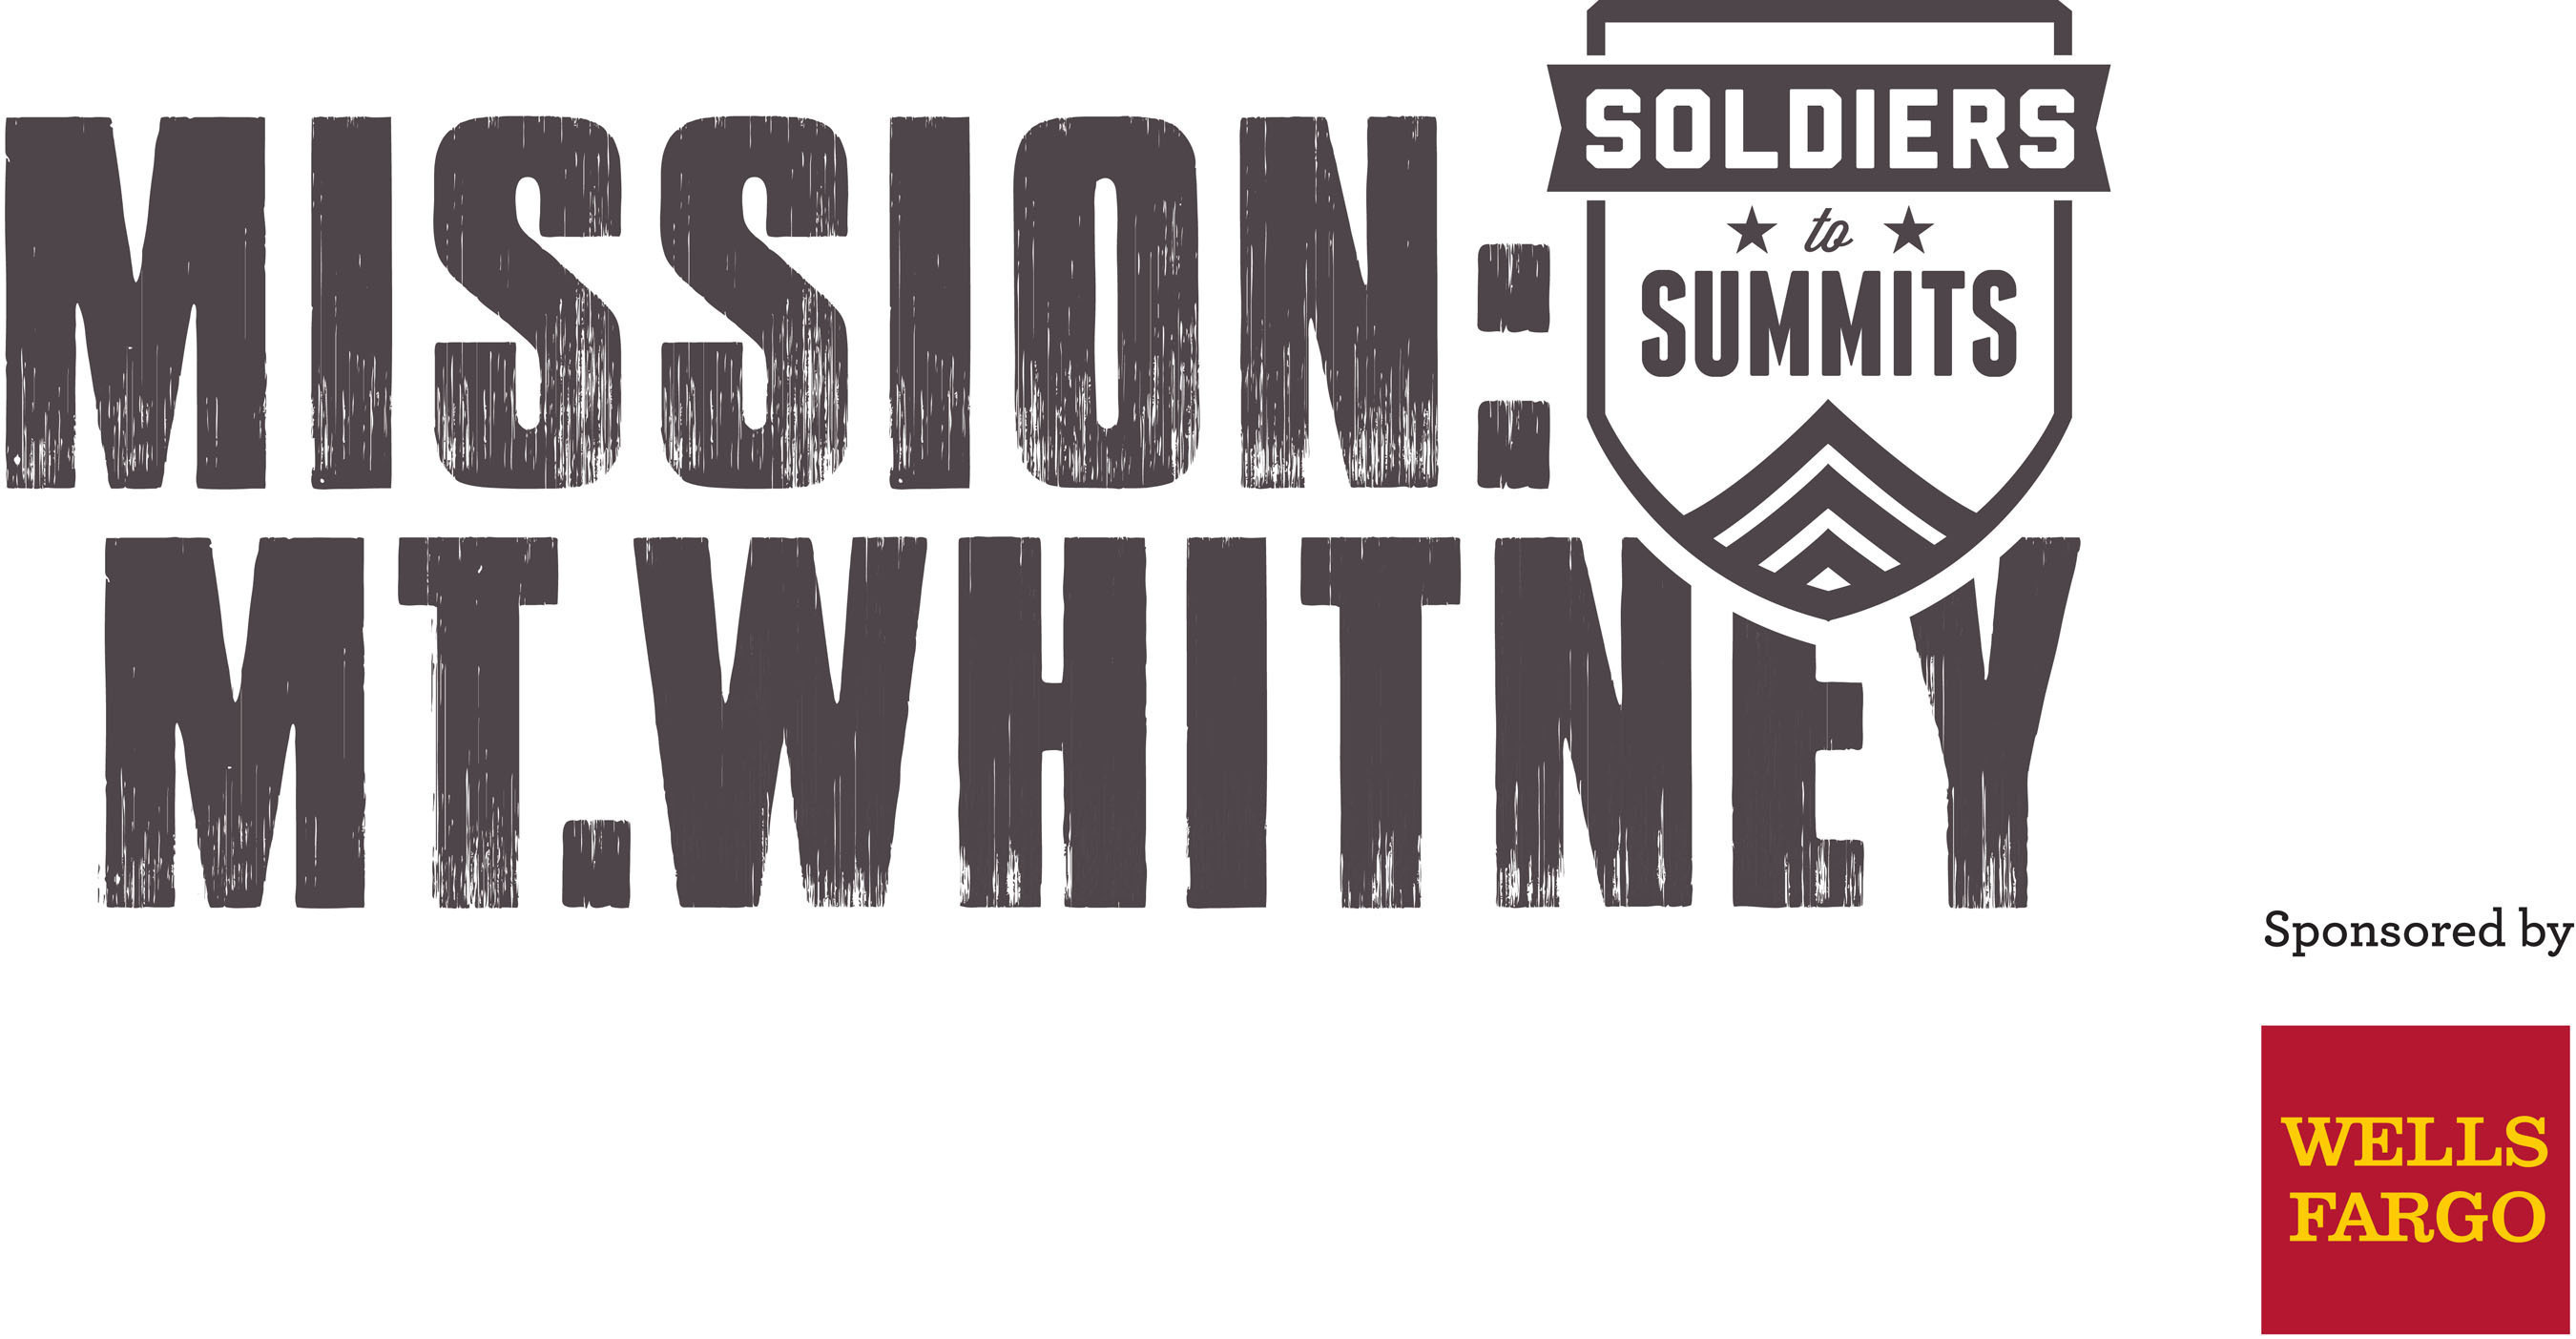 """Soldiers to Summits, Wells Fargo Announce Mt. Whitney Expedition for Wounded Veterans; Now Accepting Applications, Nominations -- Seeking Soldiers, Veterans """"Desiring to Overcome Barriers."""" (PRNewsFoto/Soldiers to Summits) (PRNewsFoto/SOLDIERS TO SUMMITS)"""